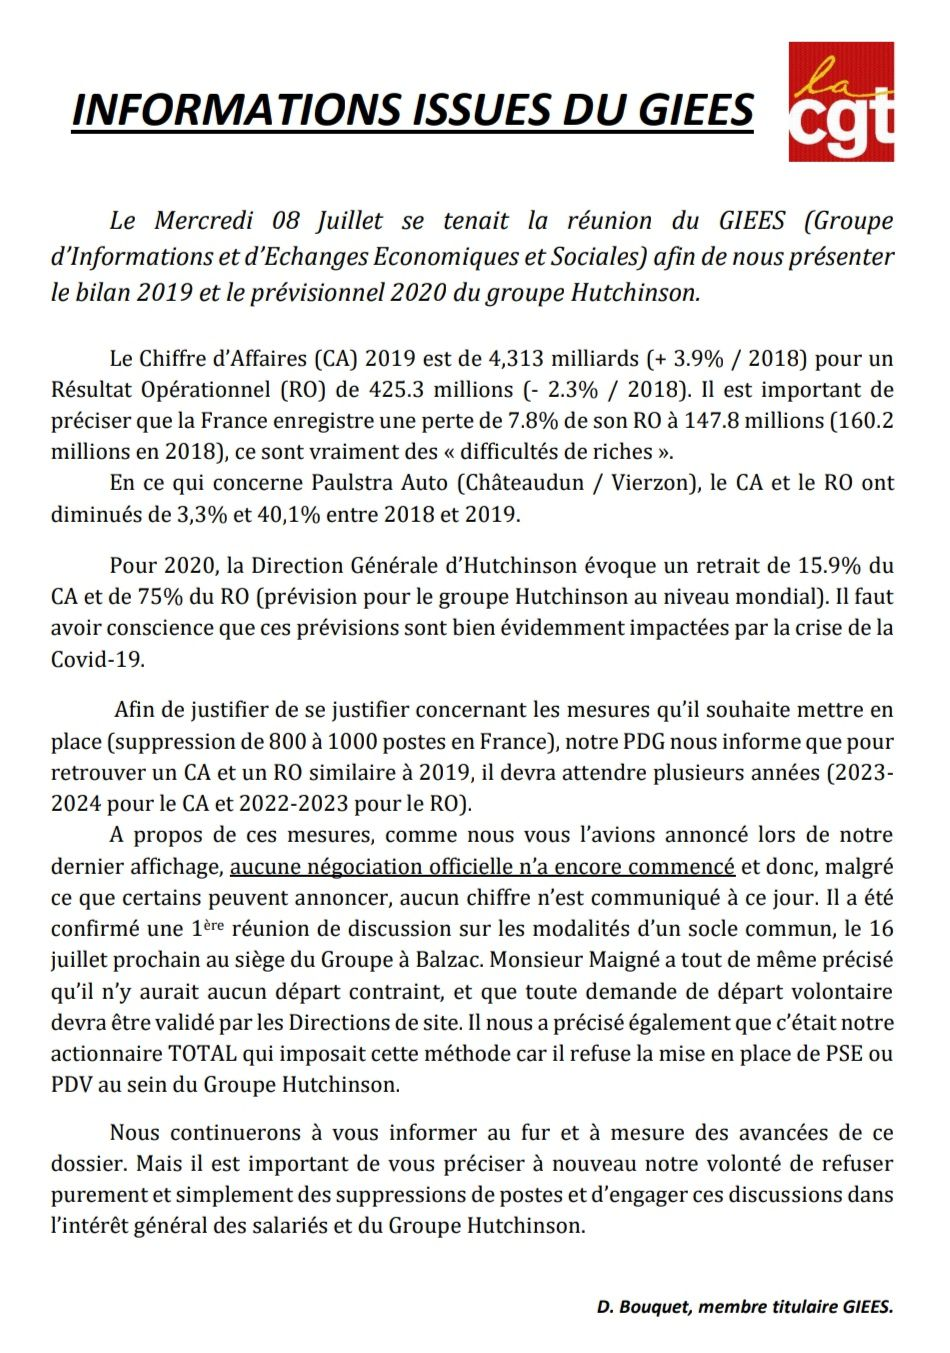 Informations issues du GIEES du 8 juillet 2020.